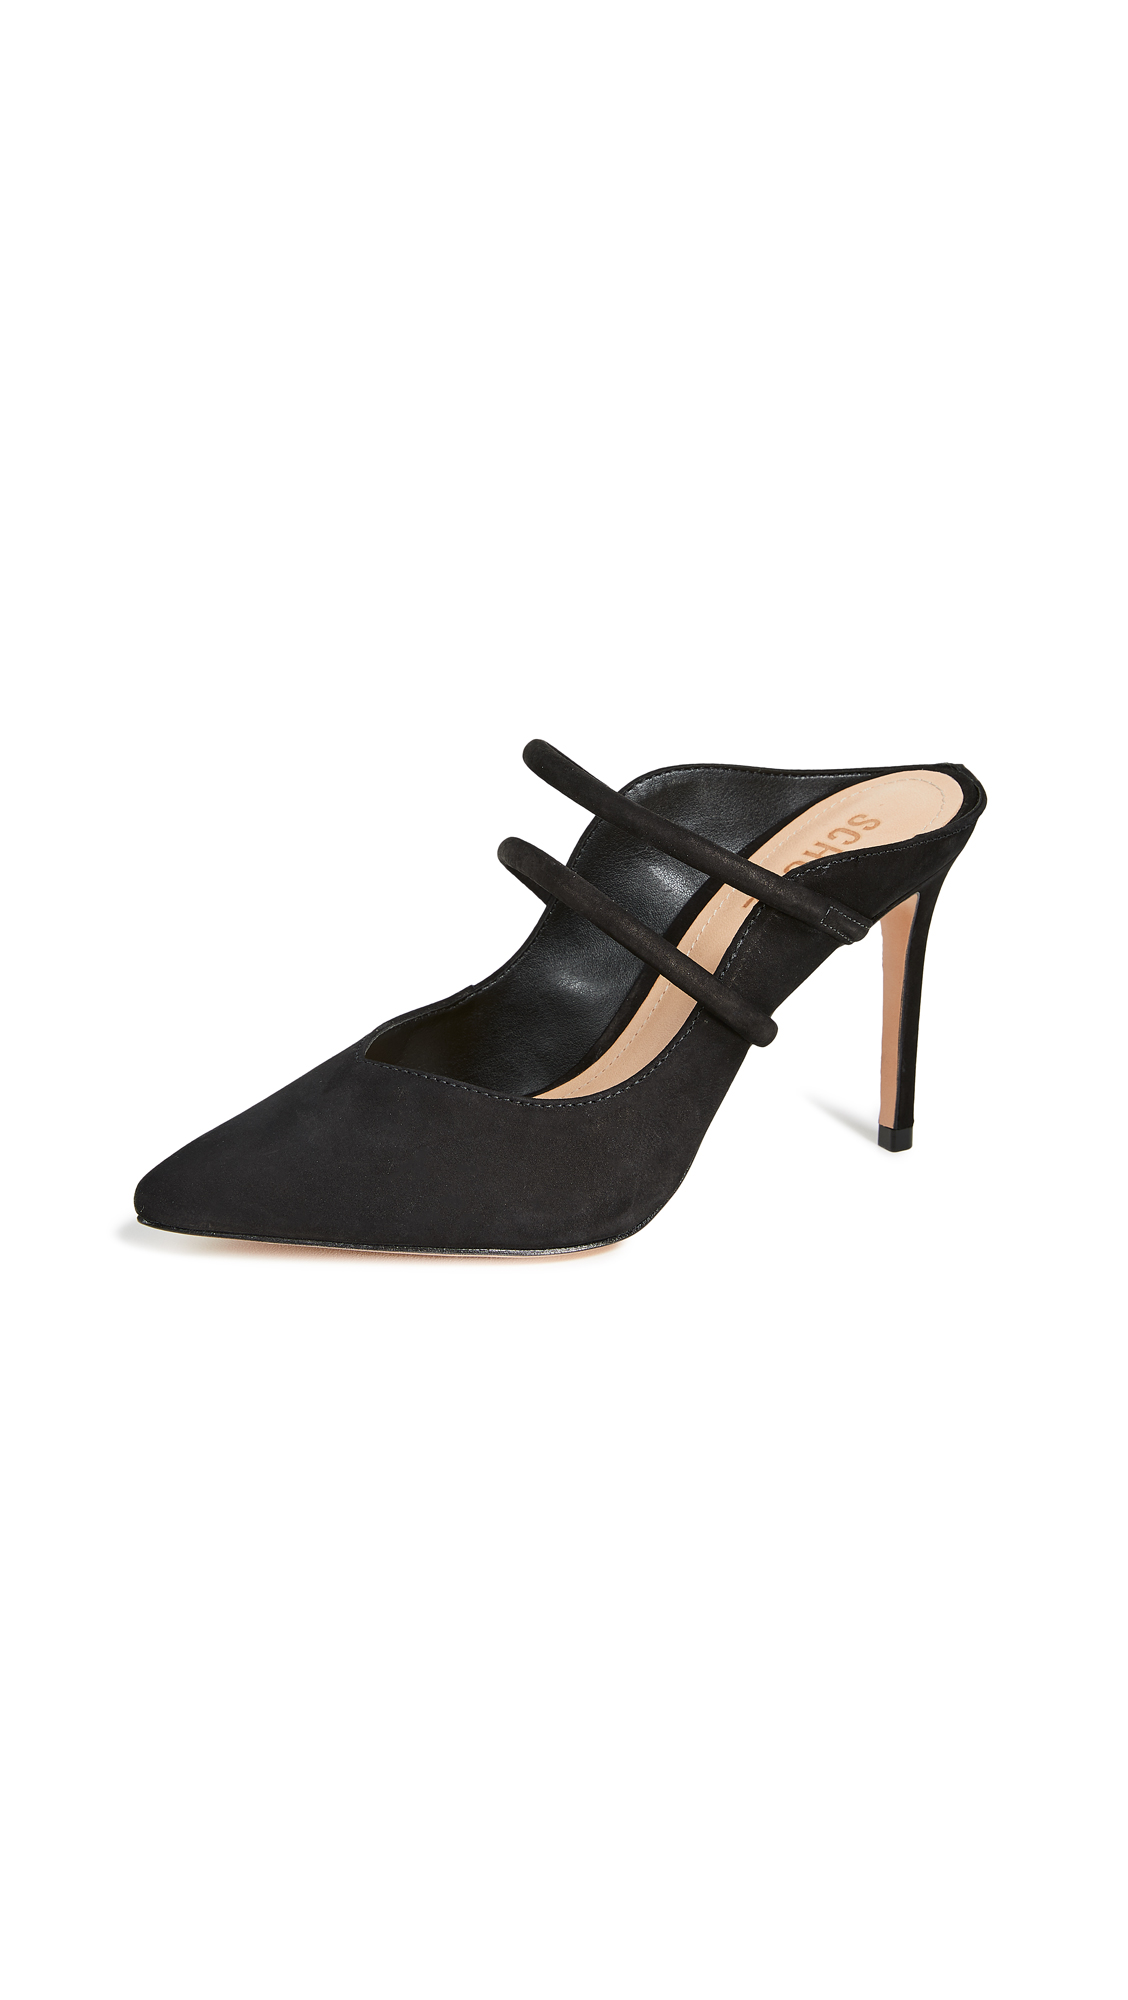 Schutz Twila Point Toe Mules - Black